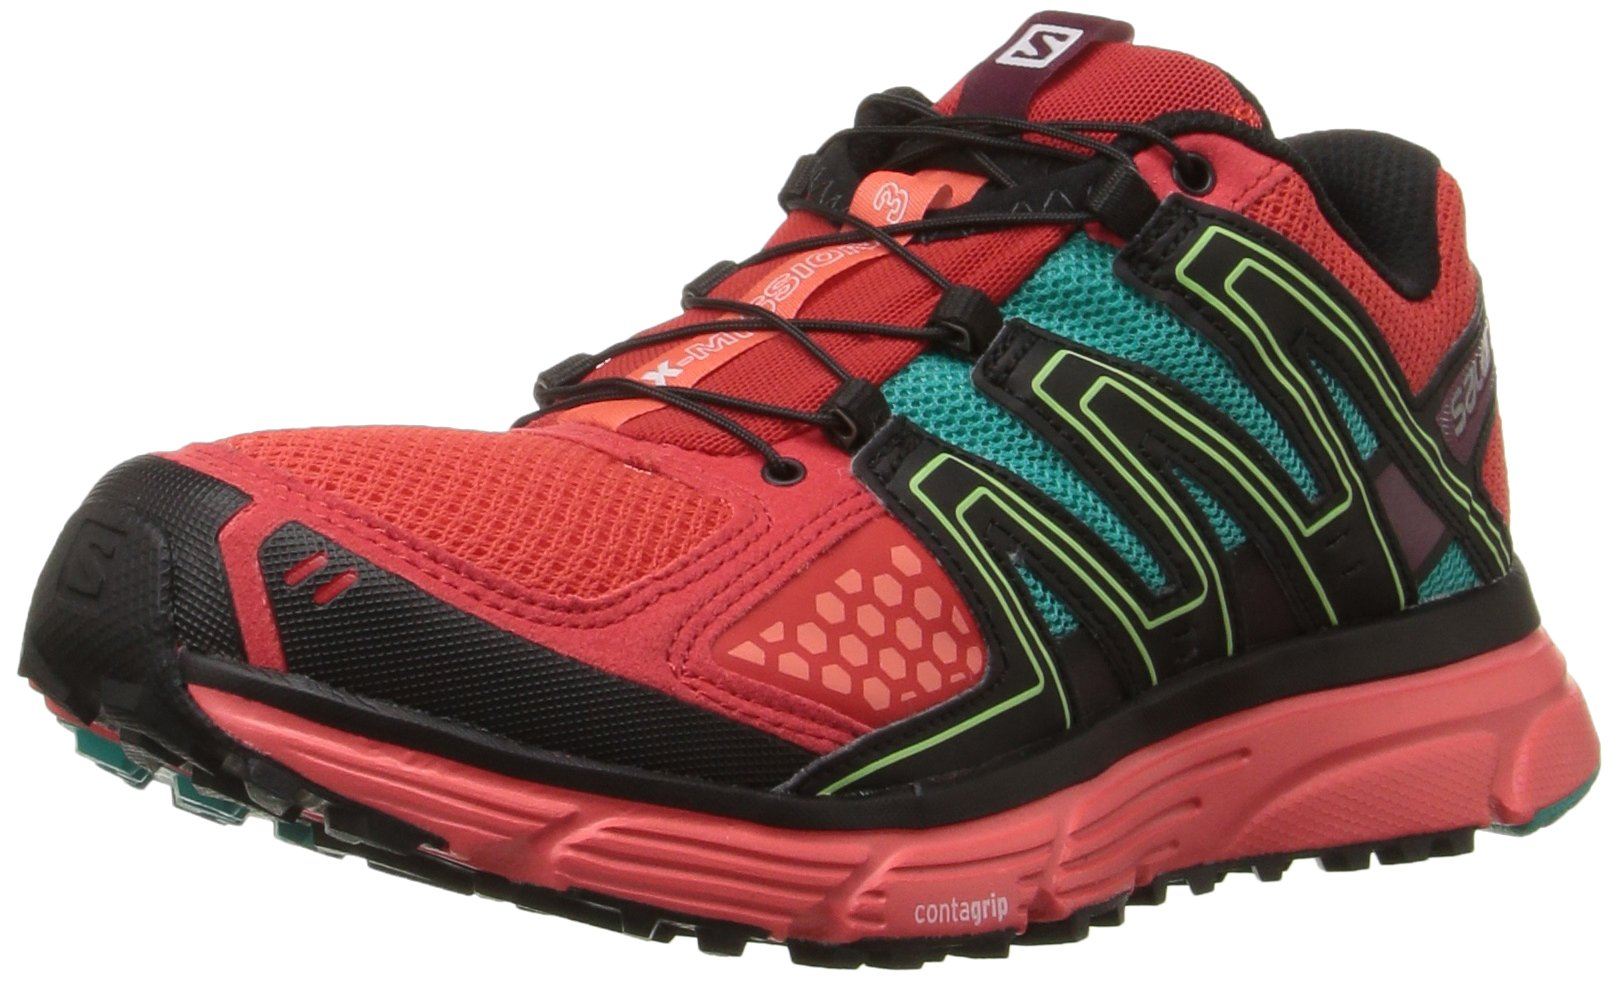 Salomon Women's X-Mission 3 W Trail Runner, Infrared/Coral Punch/Teal Blue Fabric, 5 B US by Salomon